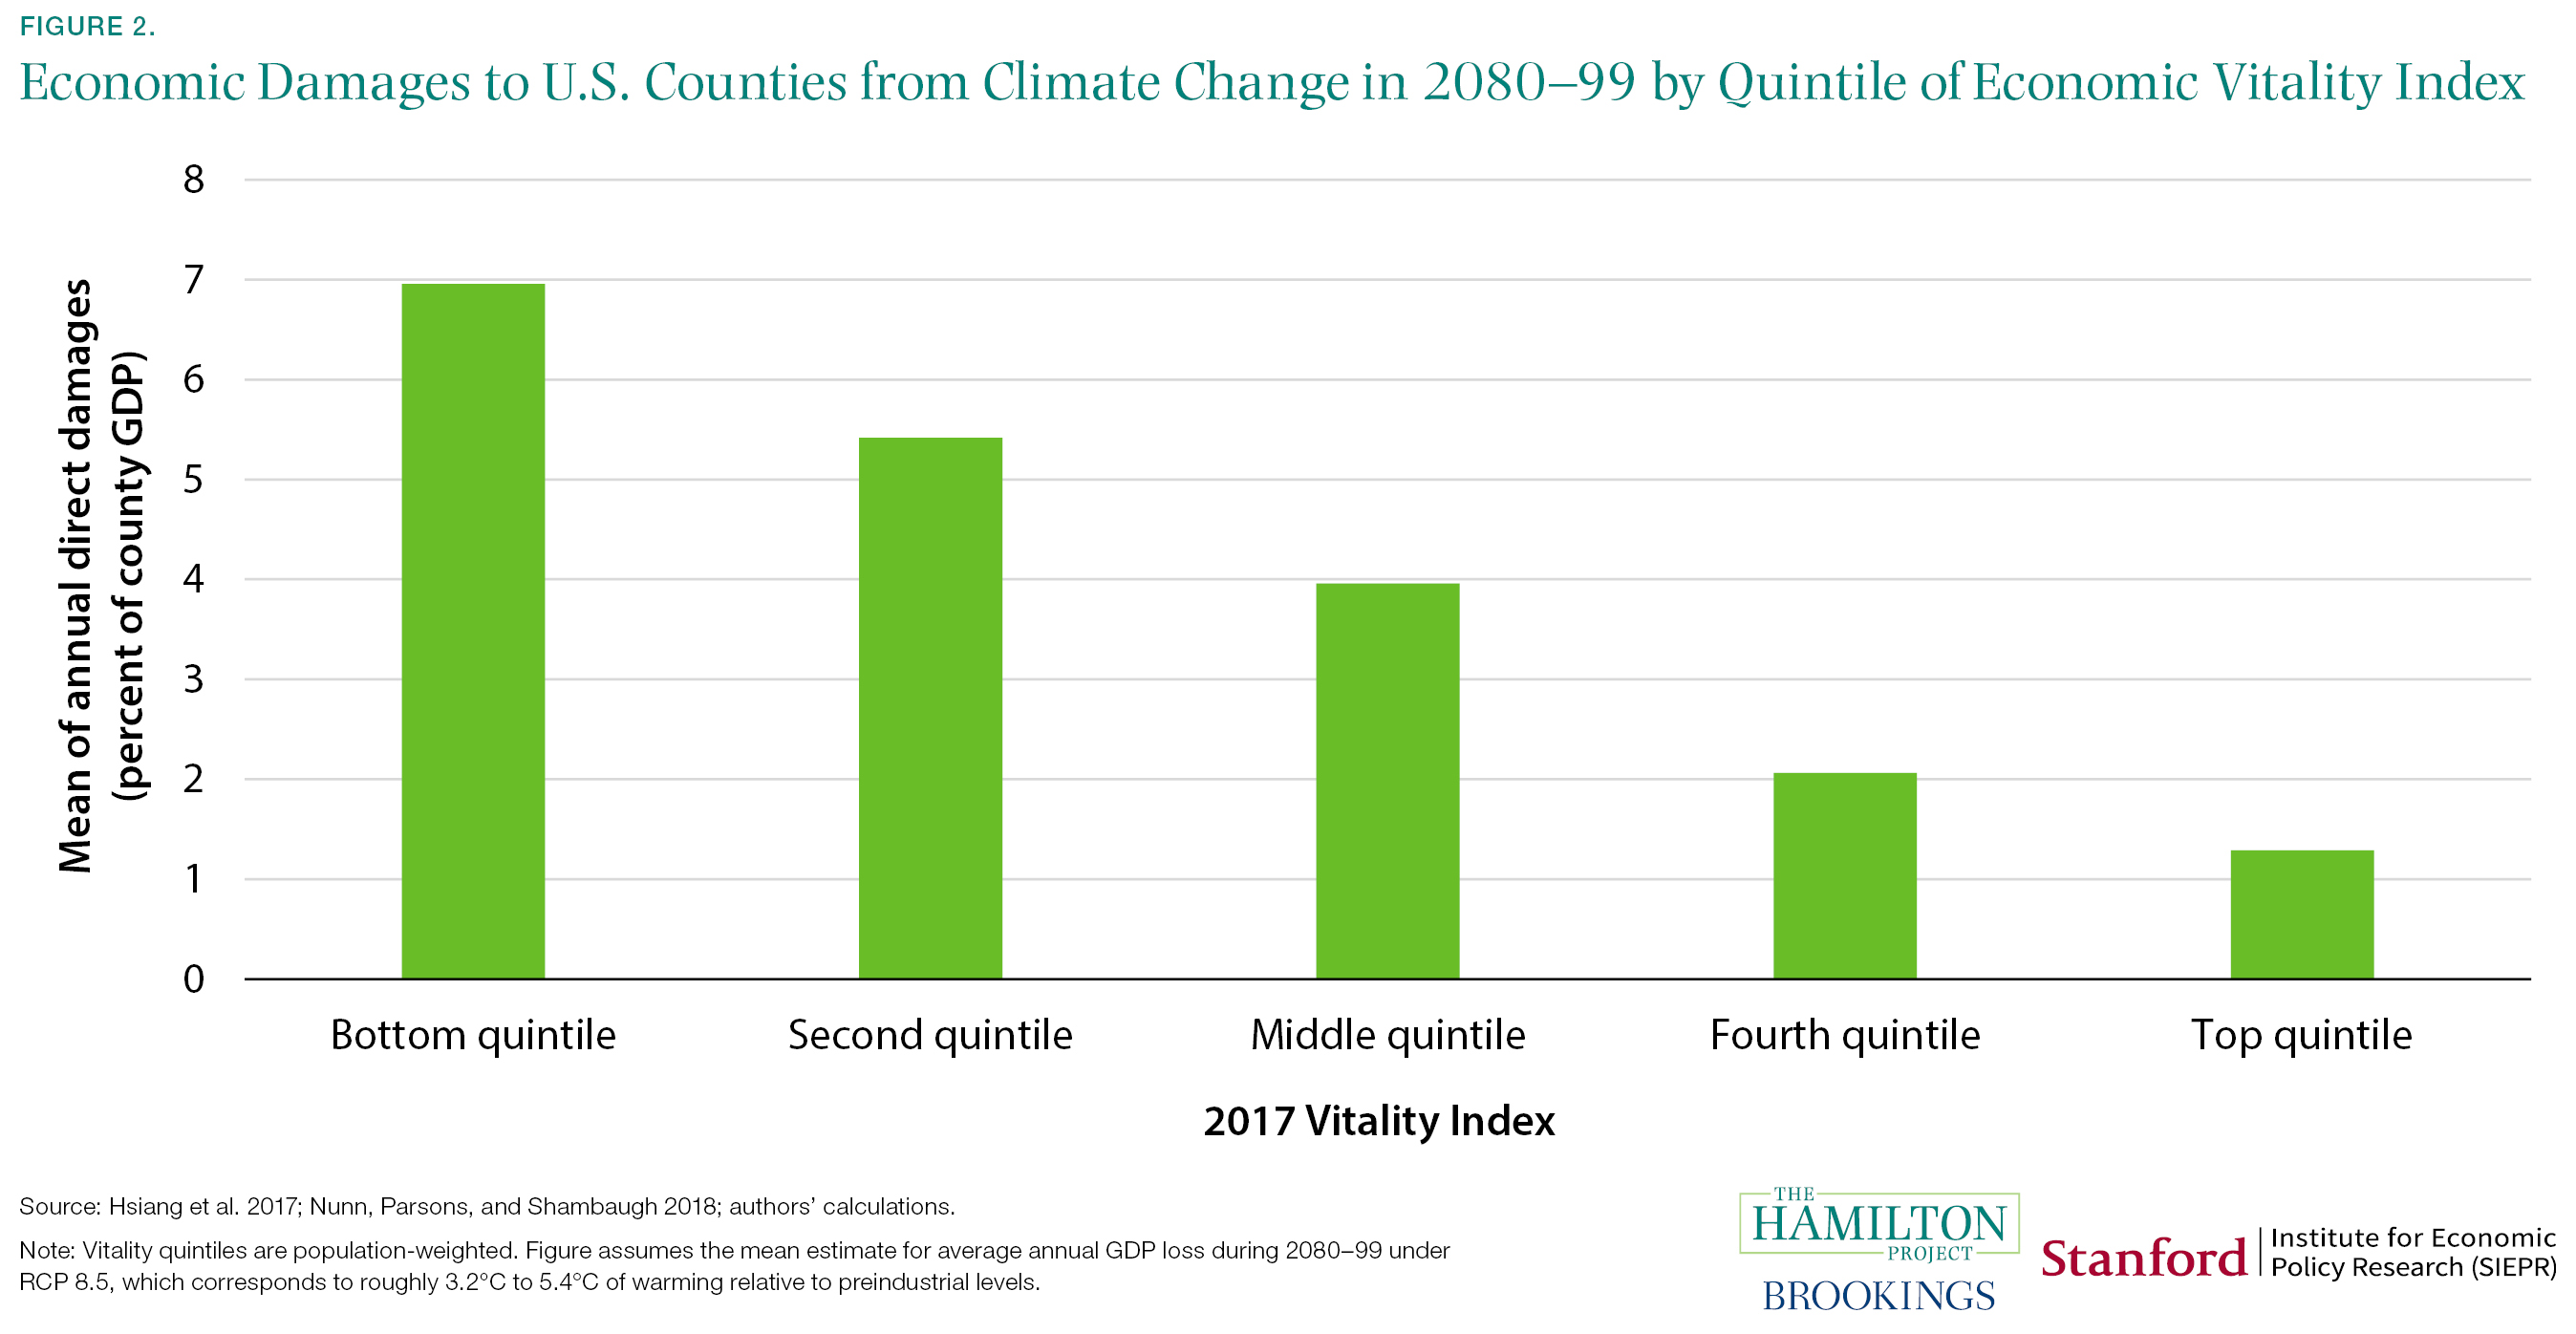 Economic Damages to U.S. Counties from Climate Change in 2080-99 by Quintile of Economic Vitality Index